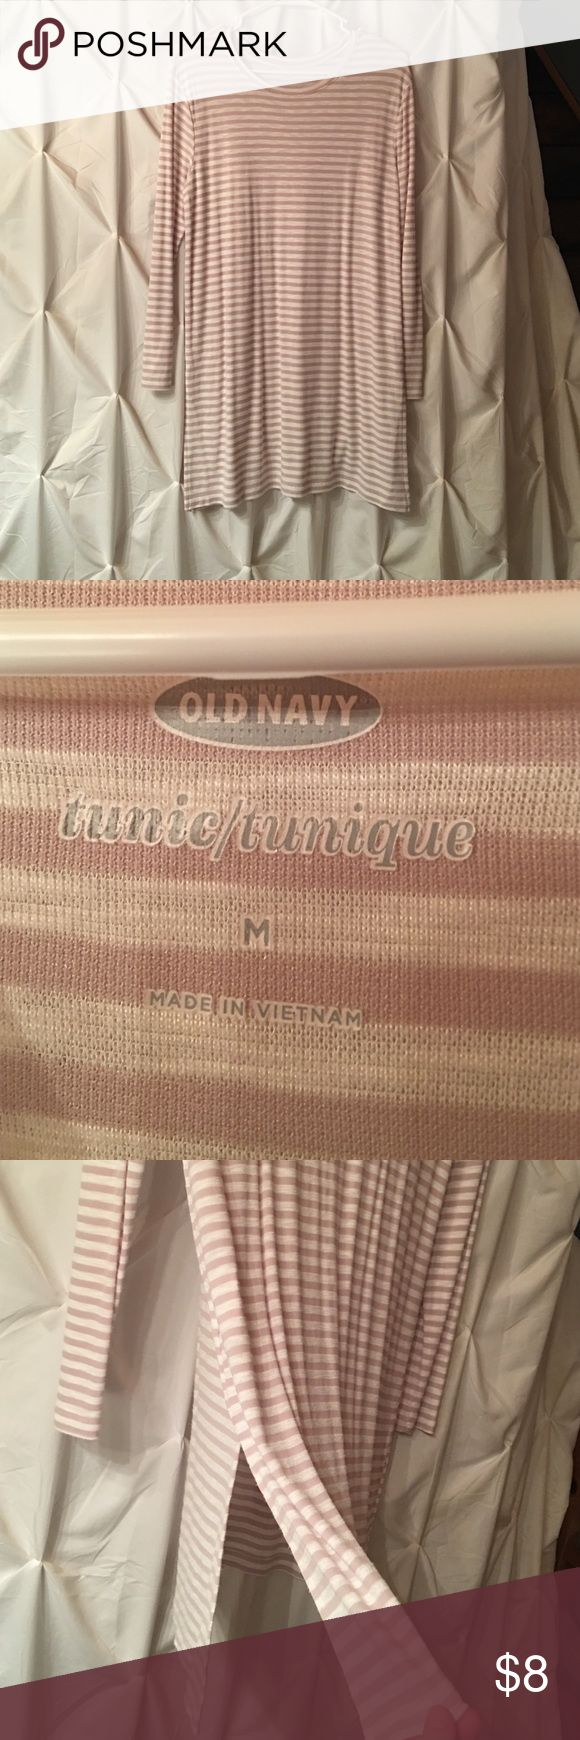 Old Nacy long sleeve beige & white striped tunic Size medium, kind of thin so a cami looks best underneath. Looks great with leggings or jeans! Old Navy Tops Tunics